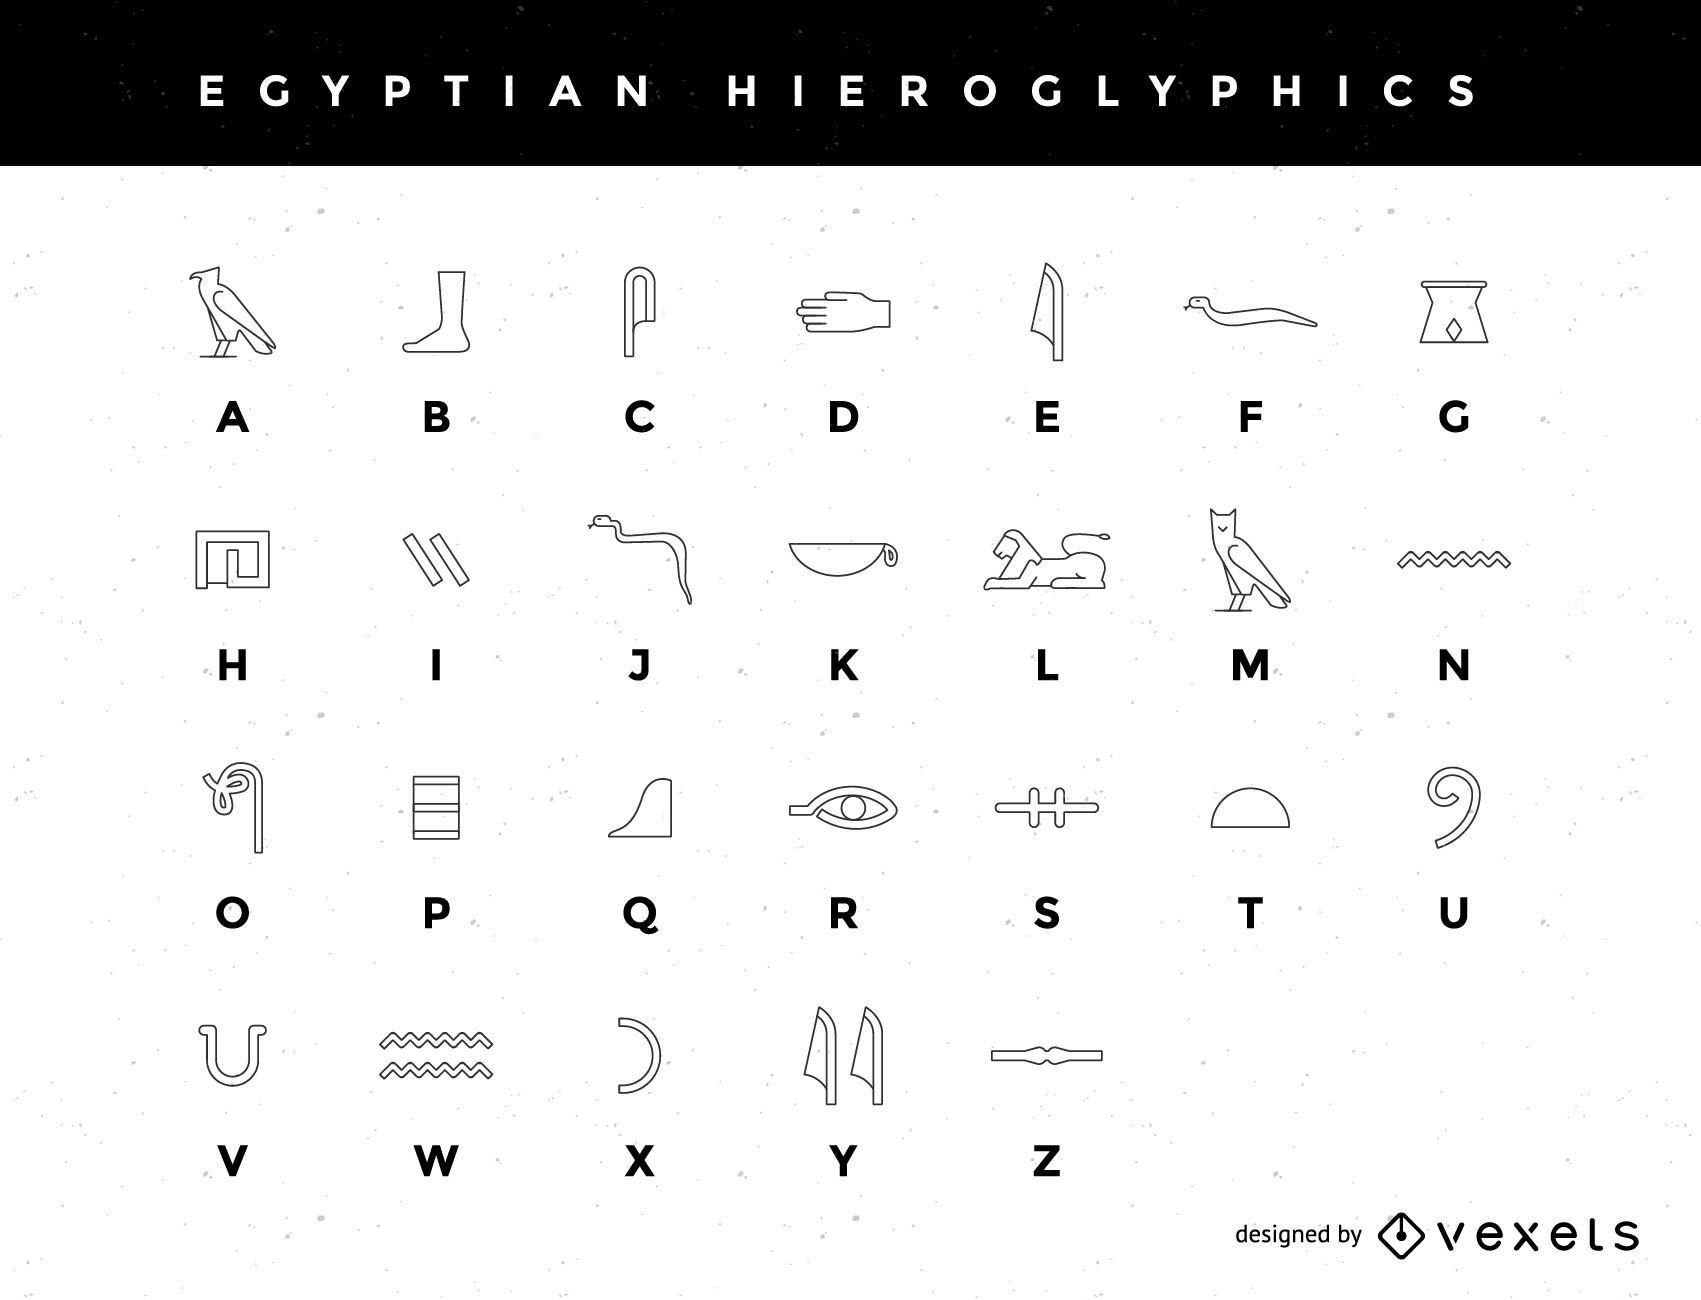 A Stylized Egyptian Hieroglyphic Alphabet Vector Download